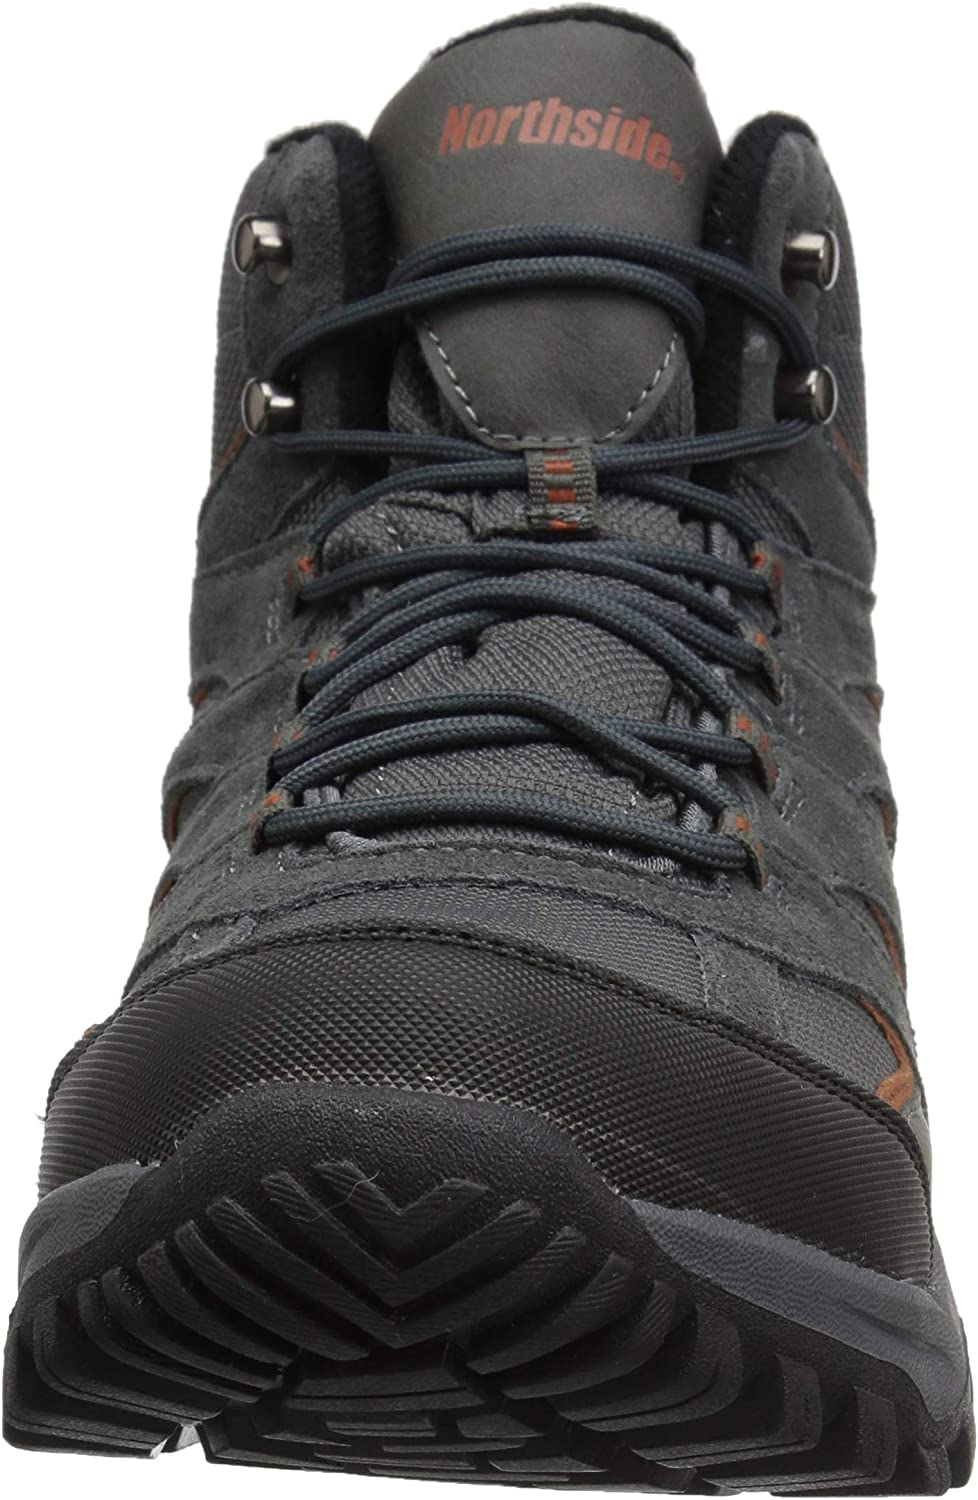 Northside Mens Gresham Mid Waterproof Hiking Shoe